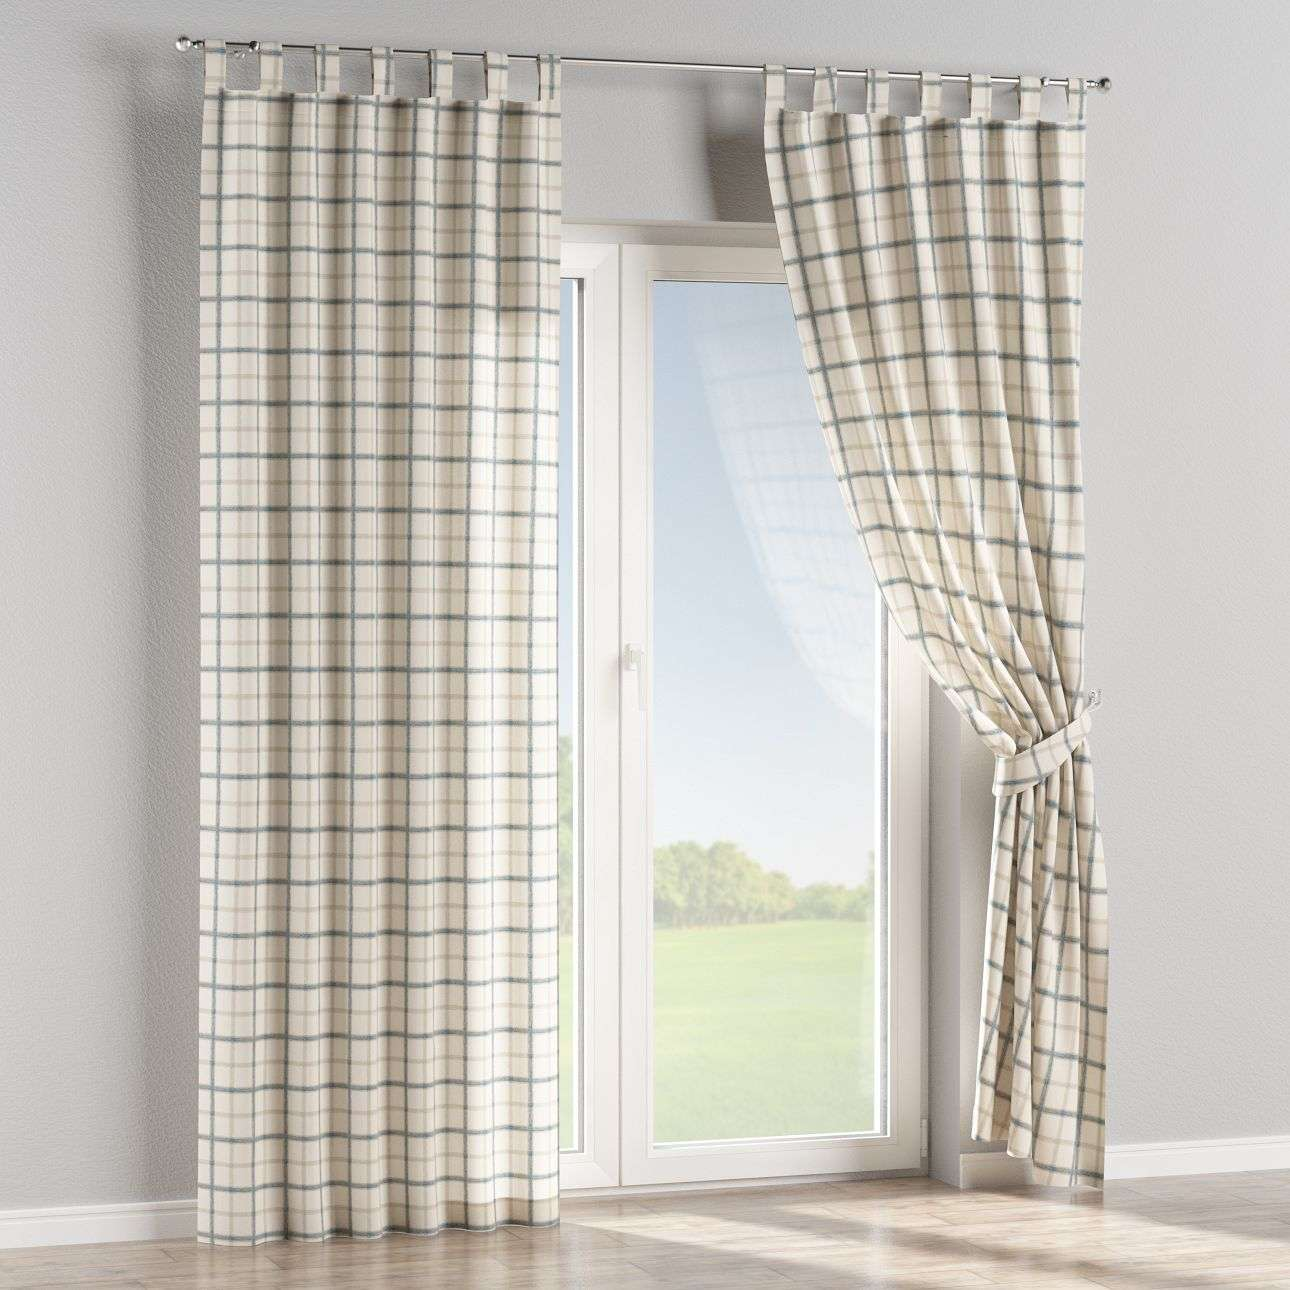 Tab top curtains 130 × 260 cm (51 × 102 inch) in collection Avinon, fabric: 131-66